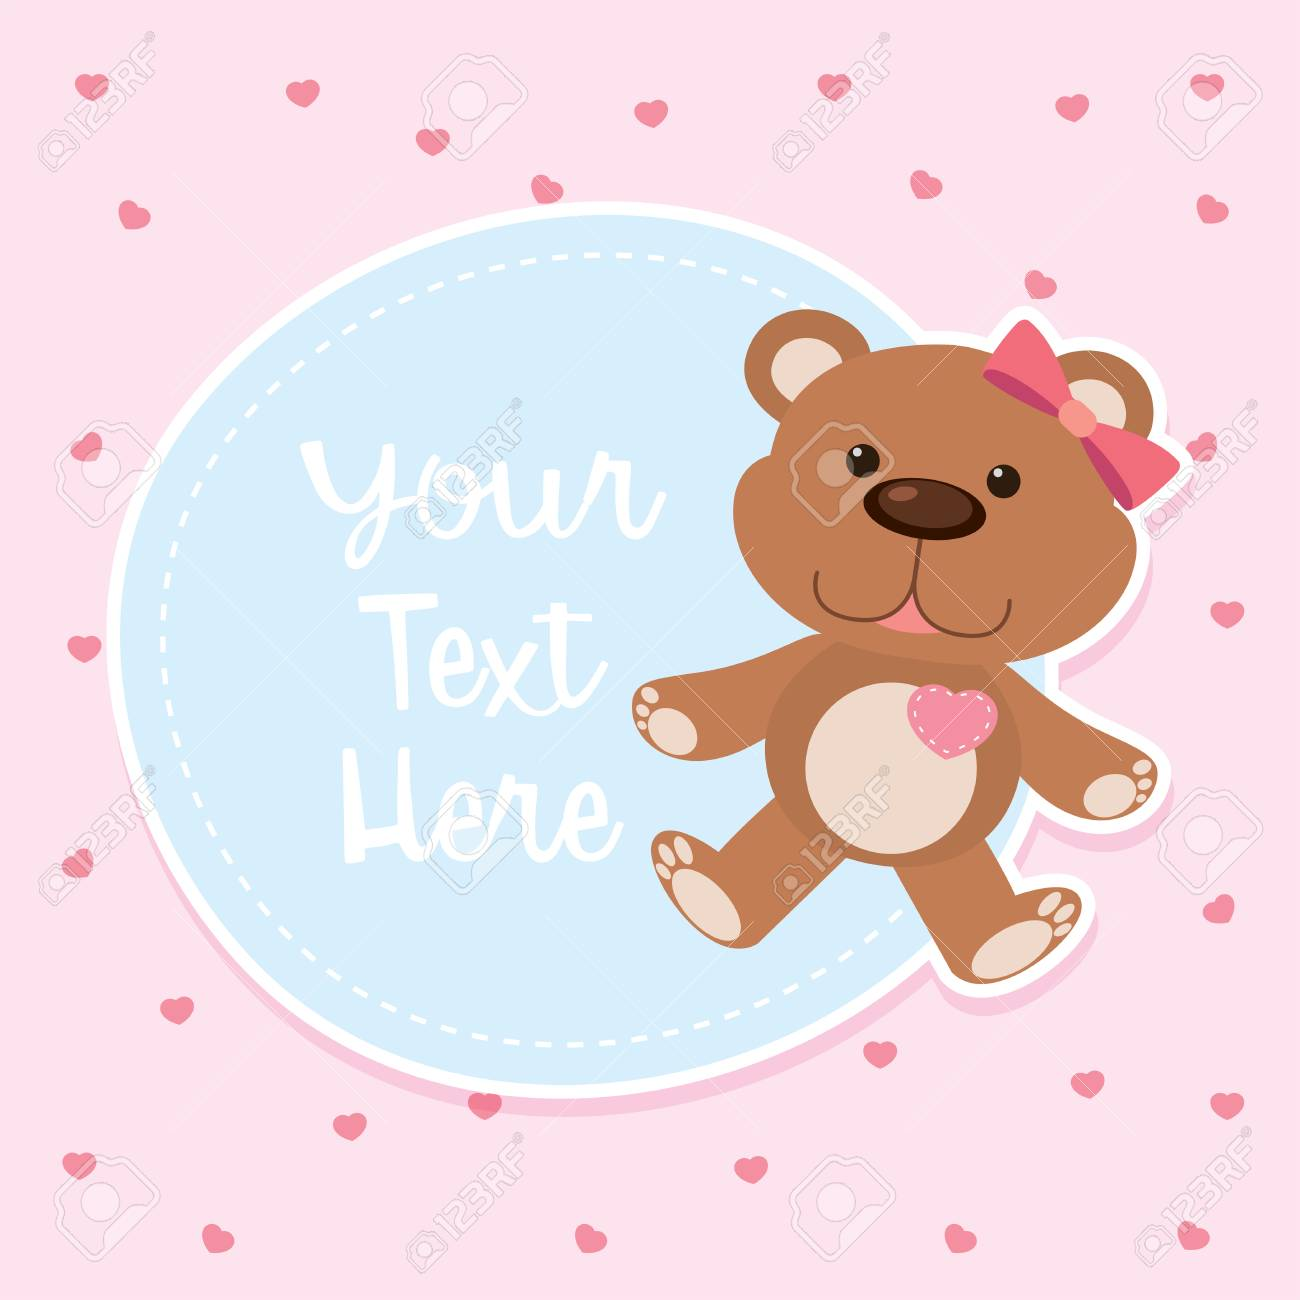 Border Template With Cute Teddybear Illustration Royalty Free